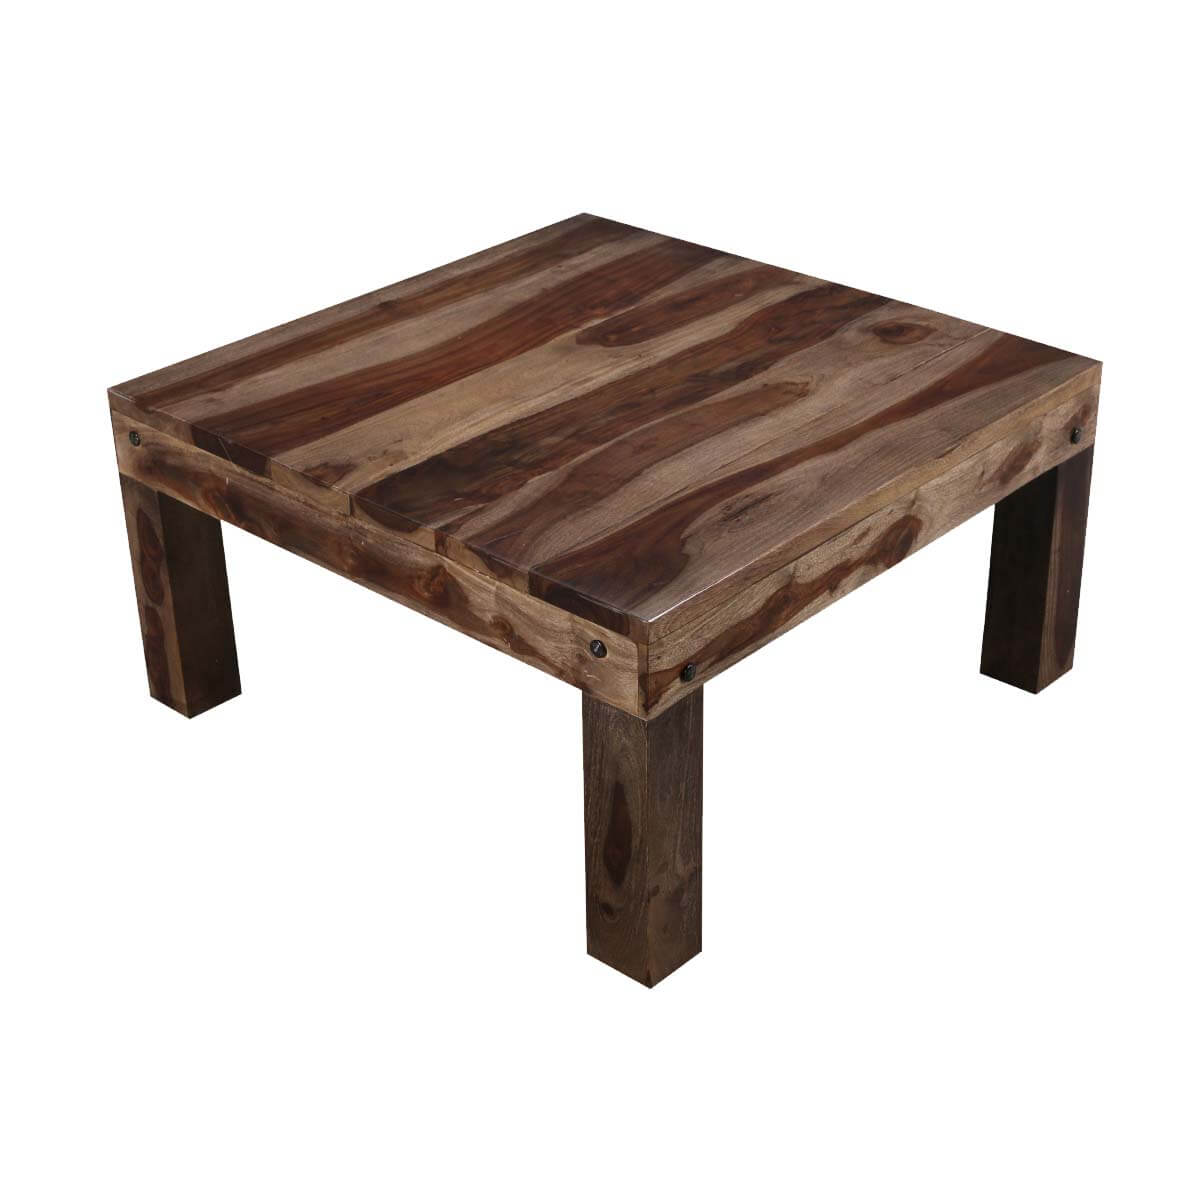 pasadena square solid wood coffee table. Black Bedroom Furniture Sets. Home Design Ideas